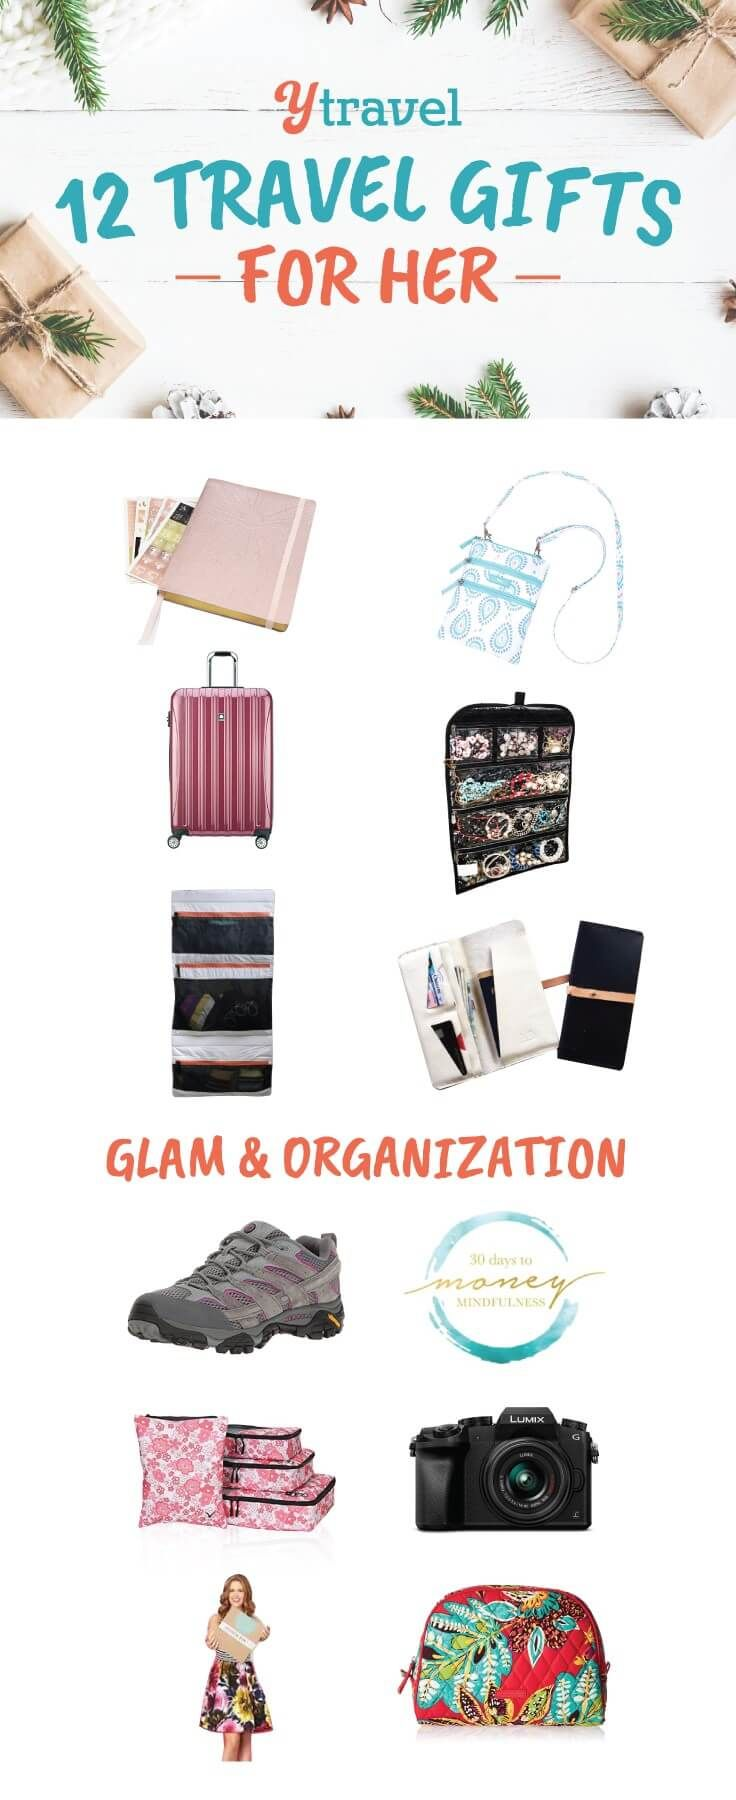 14 Exciting Travel Gifts For Her 2020 For Glam And Organization Best Travel Gifts Travel Gifts Exciting Travel